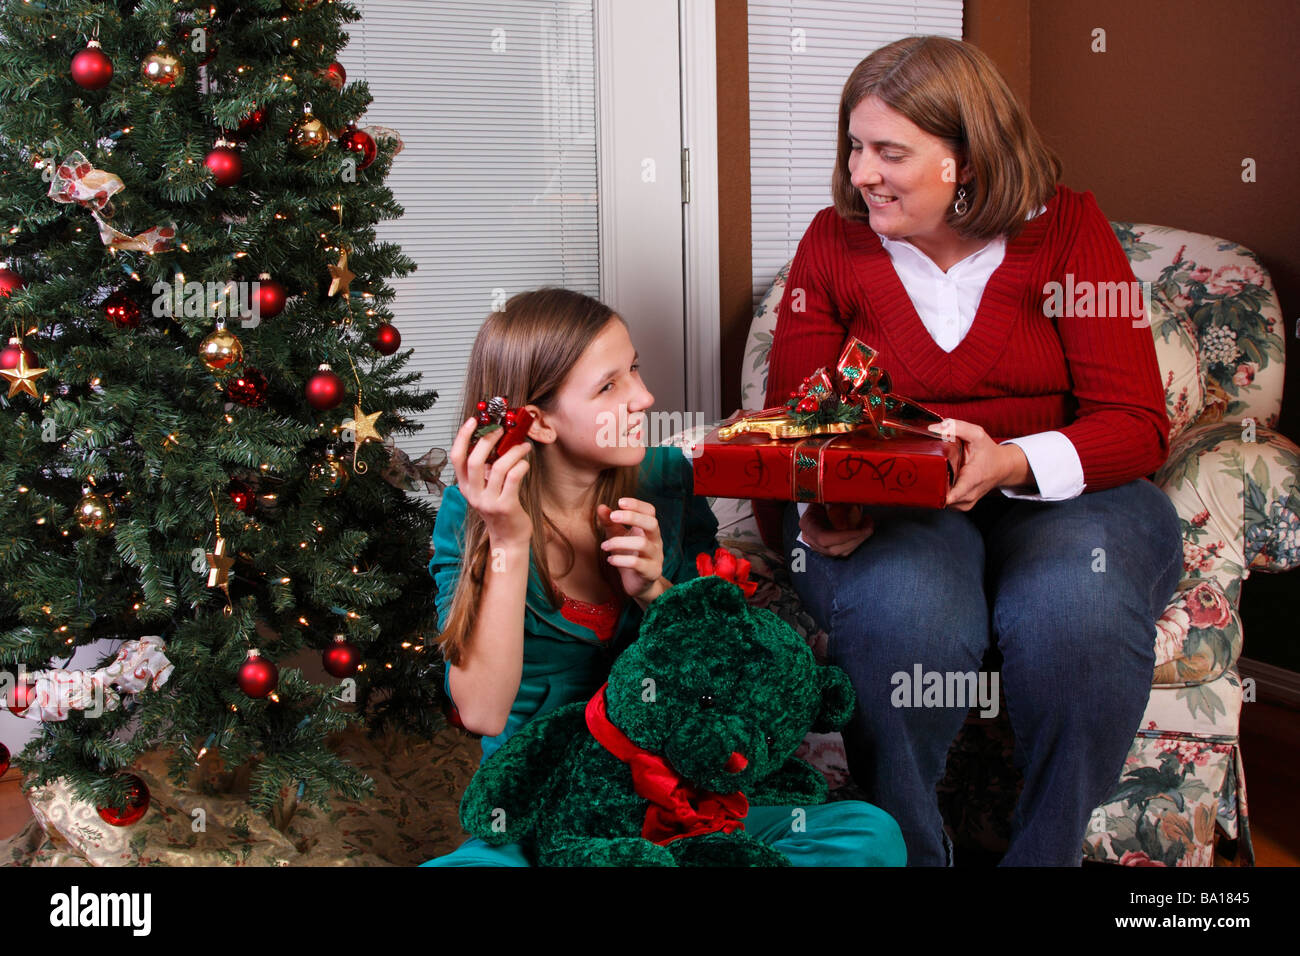 Mom And Daughter Exchanging Christmas Gifts Stock Photo